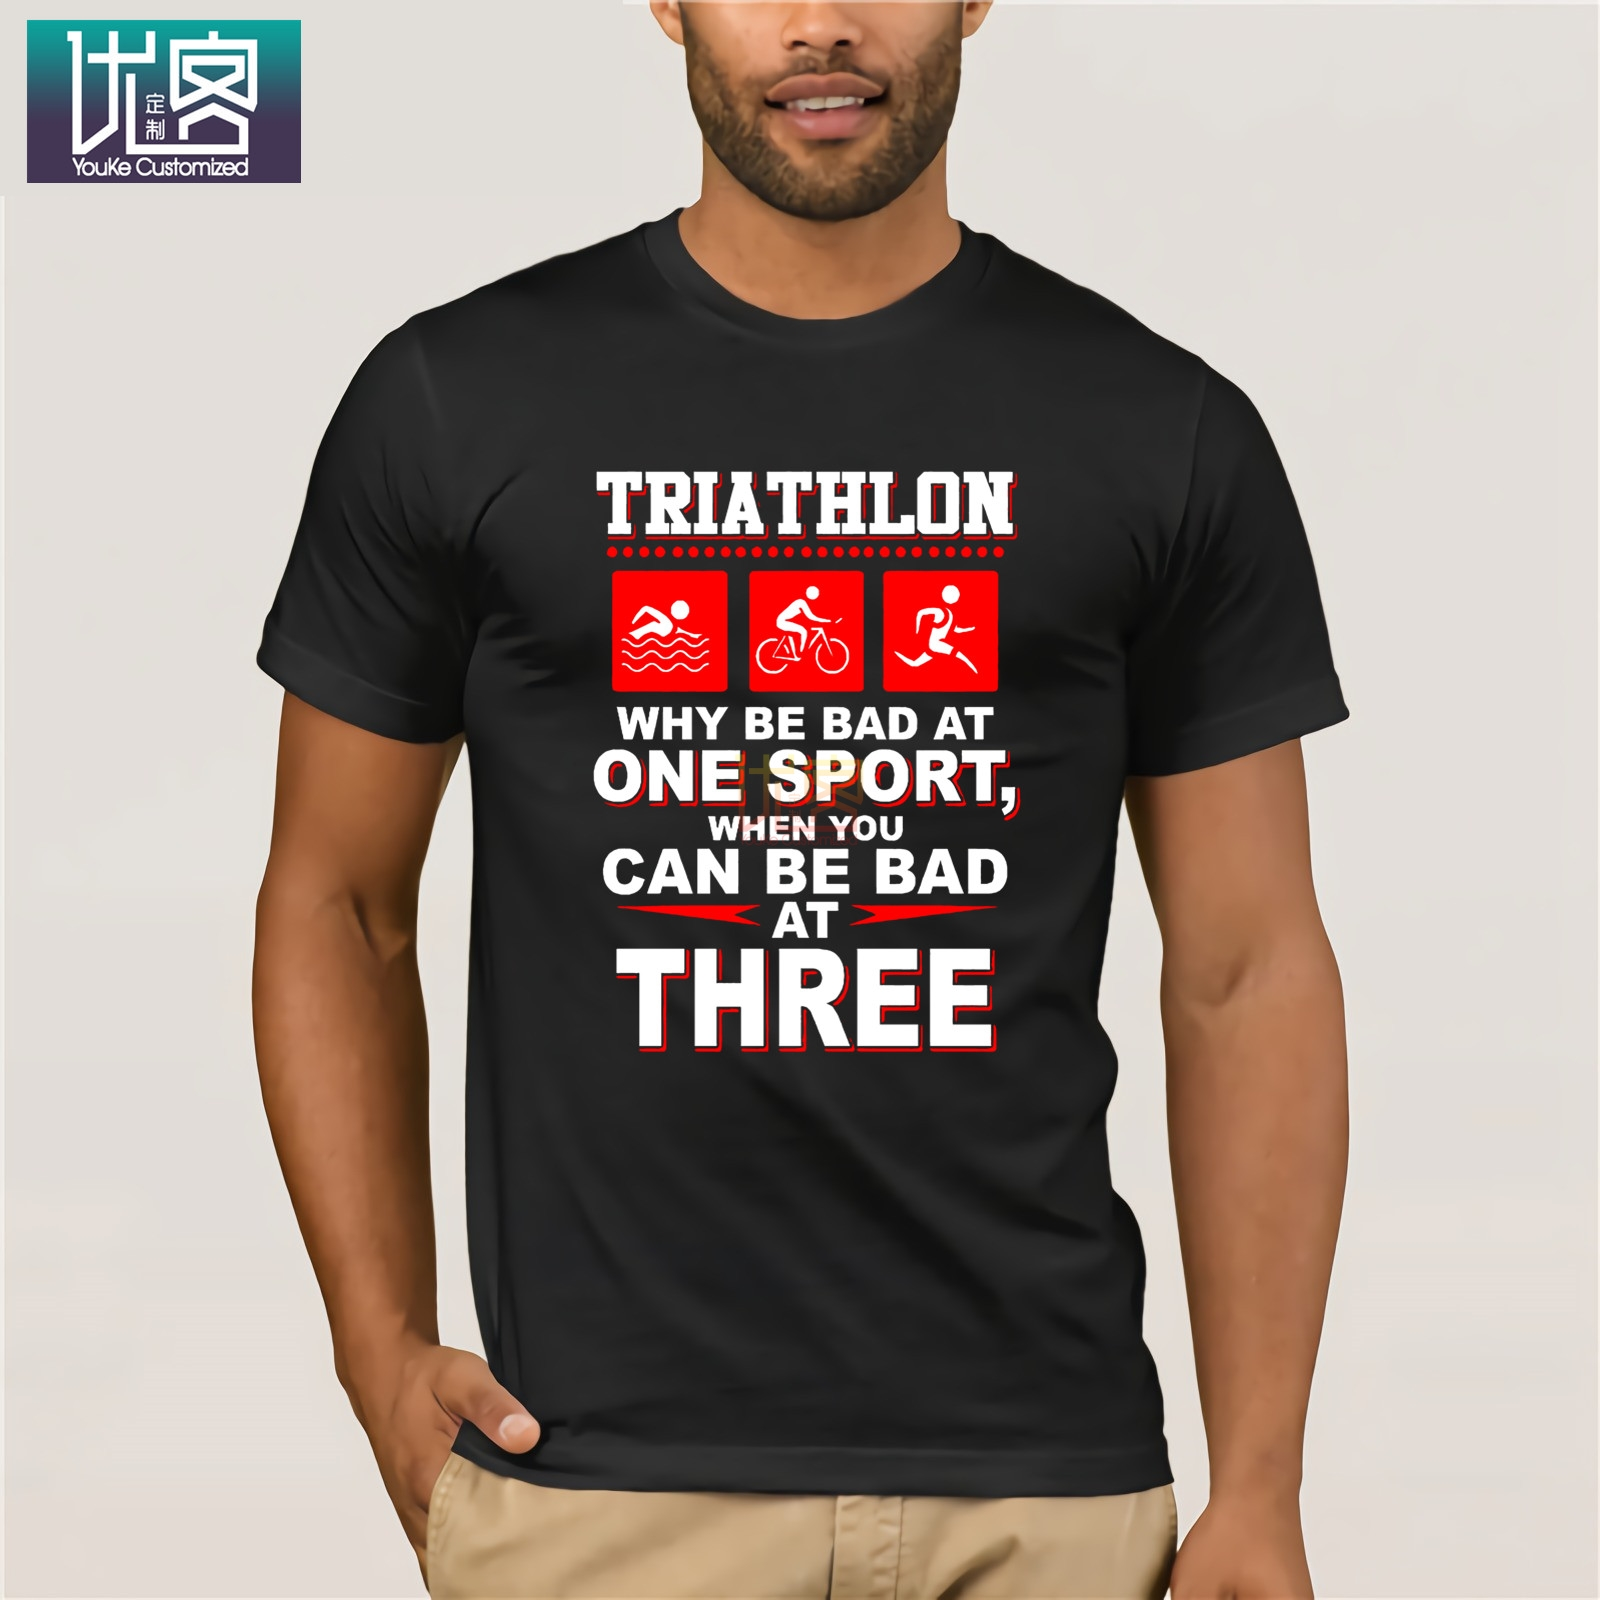 Triathlon Why Be Bad At One Sport When You Can Be Bad At Three Amazing Short Sleeve Unique Casual Short Sleeve Top For Men Tops